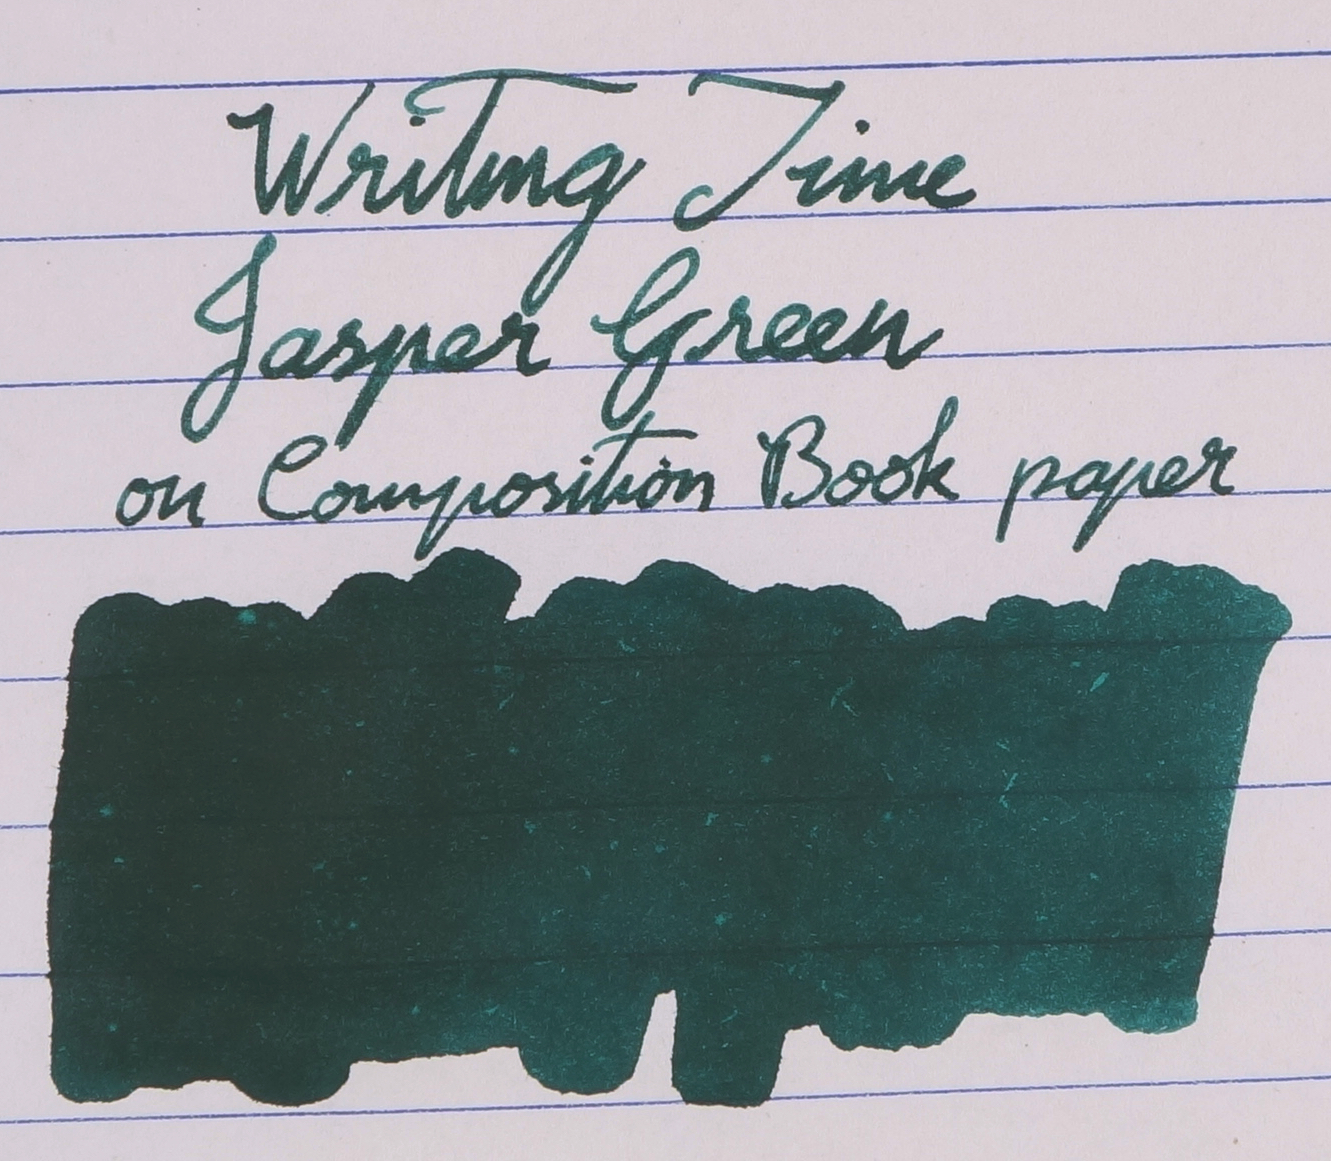 Paper Composition Book.jpg